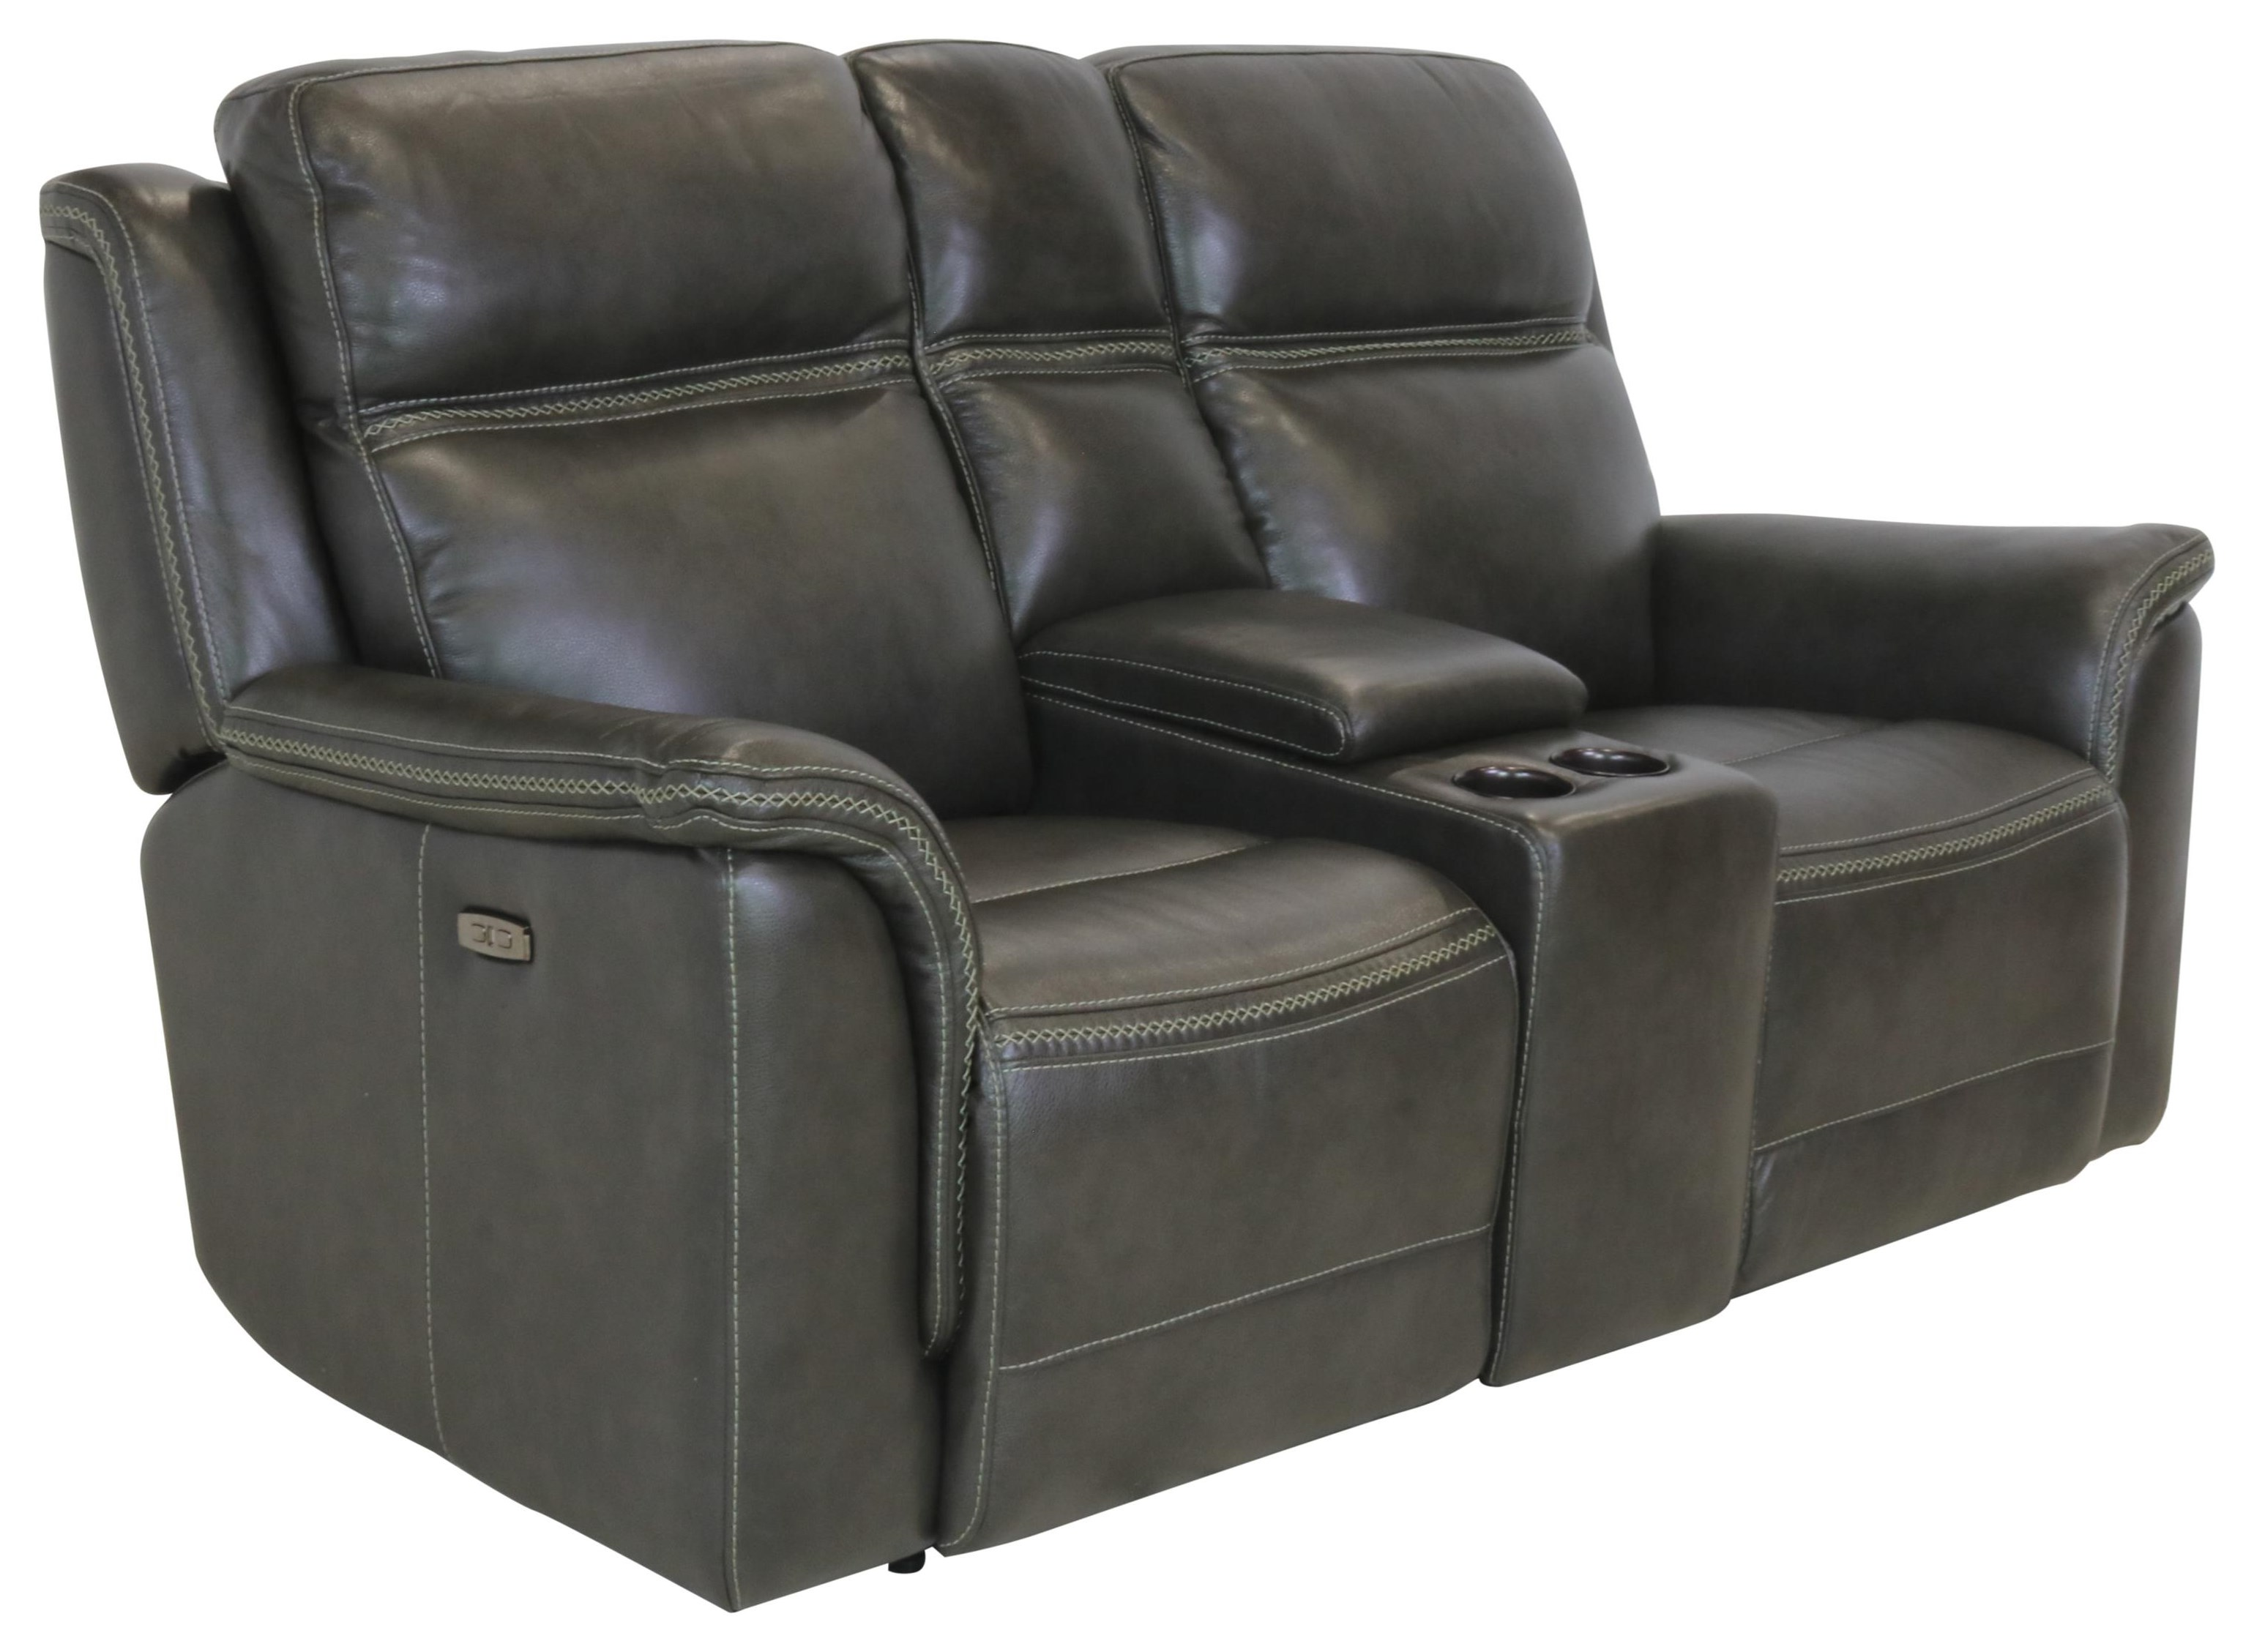 Sprintz Dante Power Loveseat with Console by Dante Leather at Sprintz Furniture